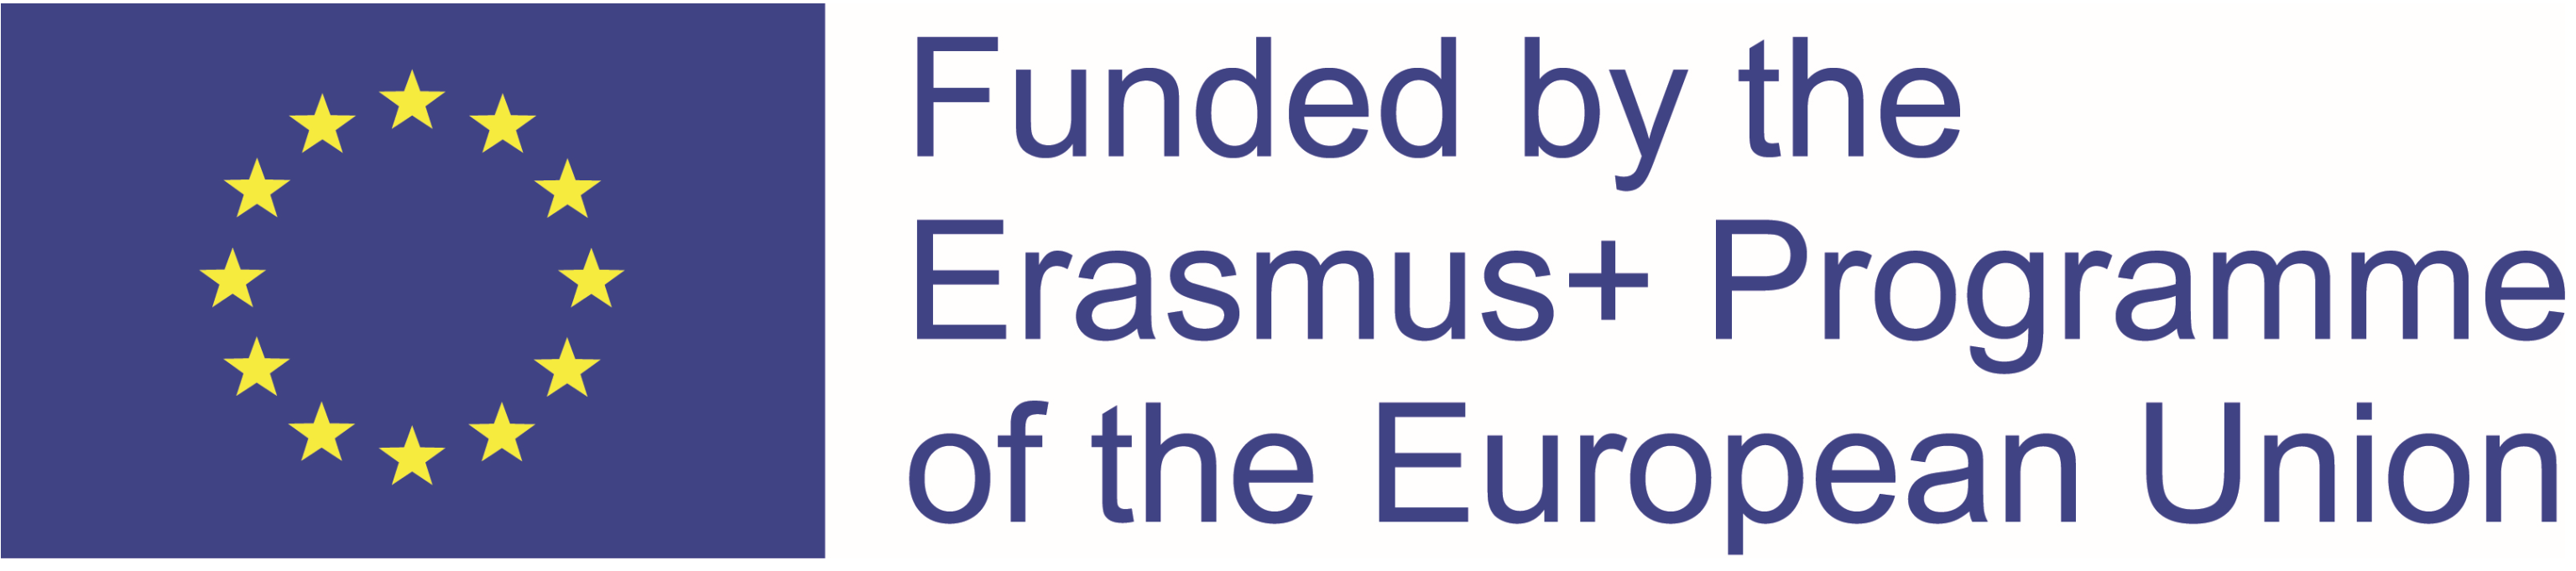 Eramsus plus logo